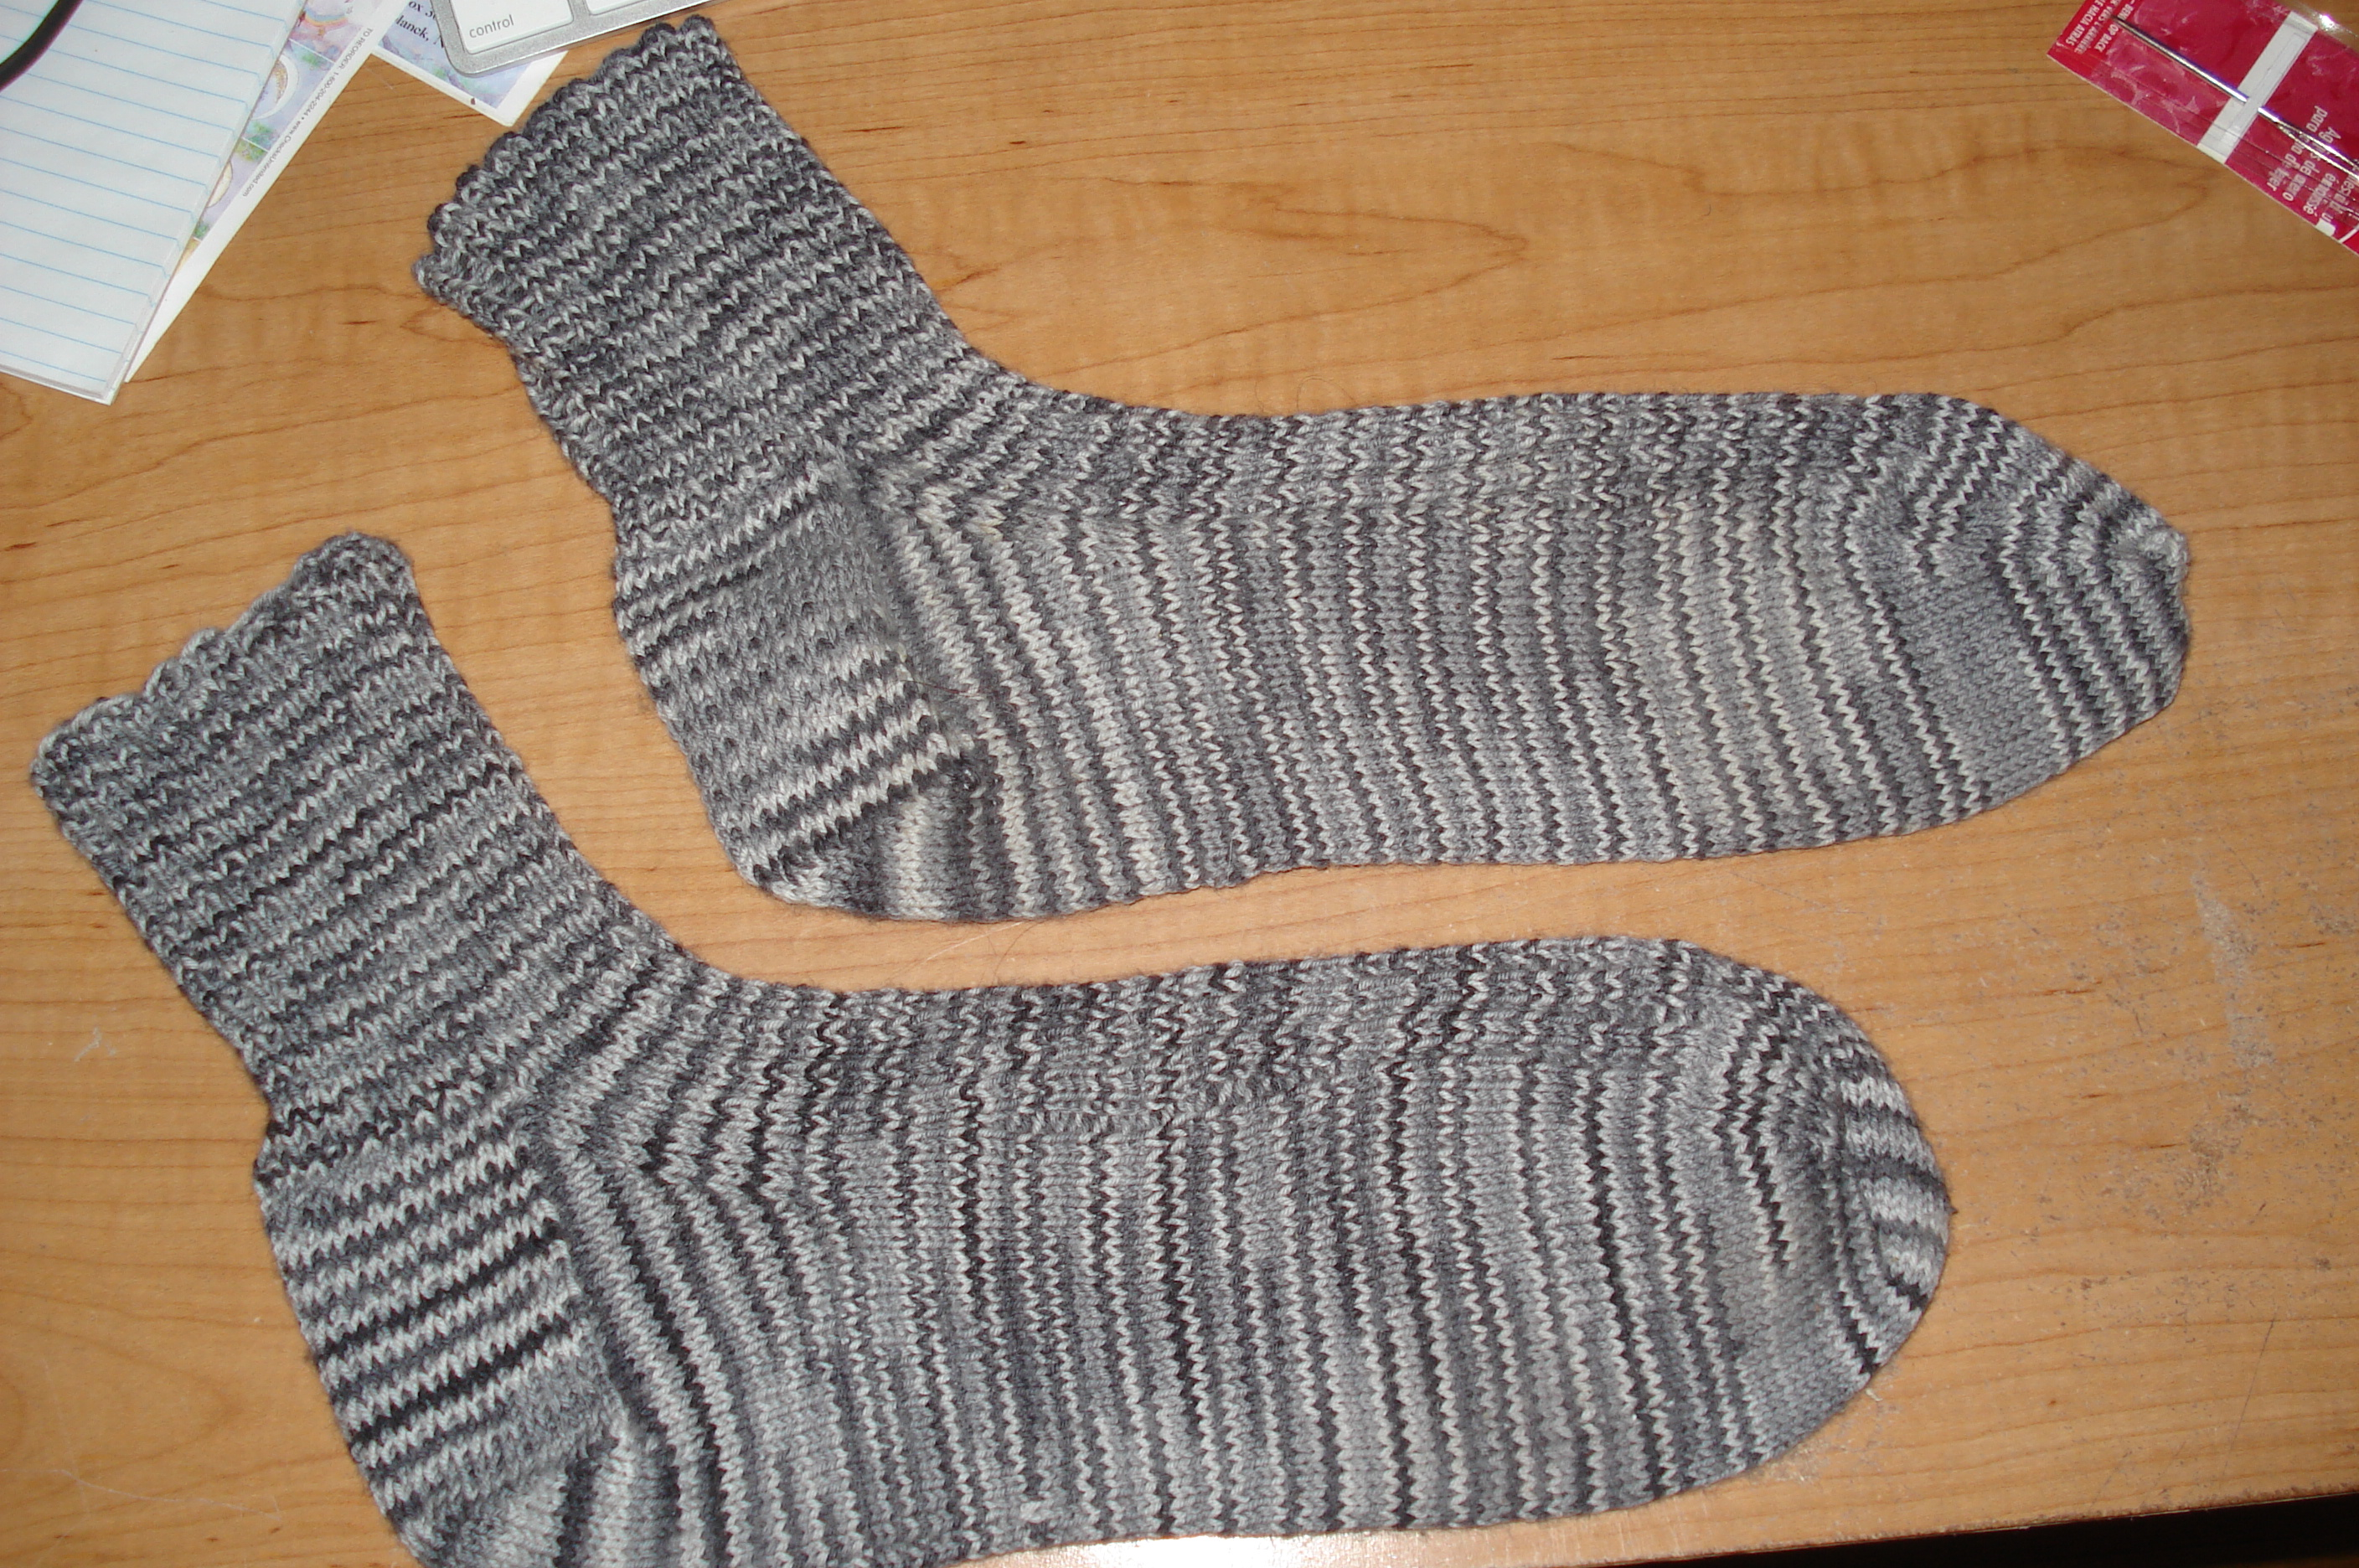 First pair of socks